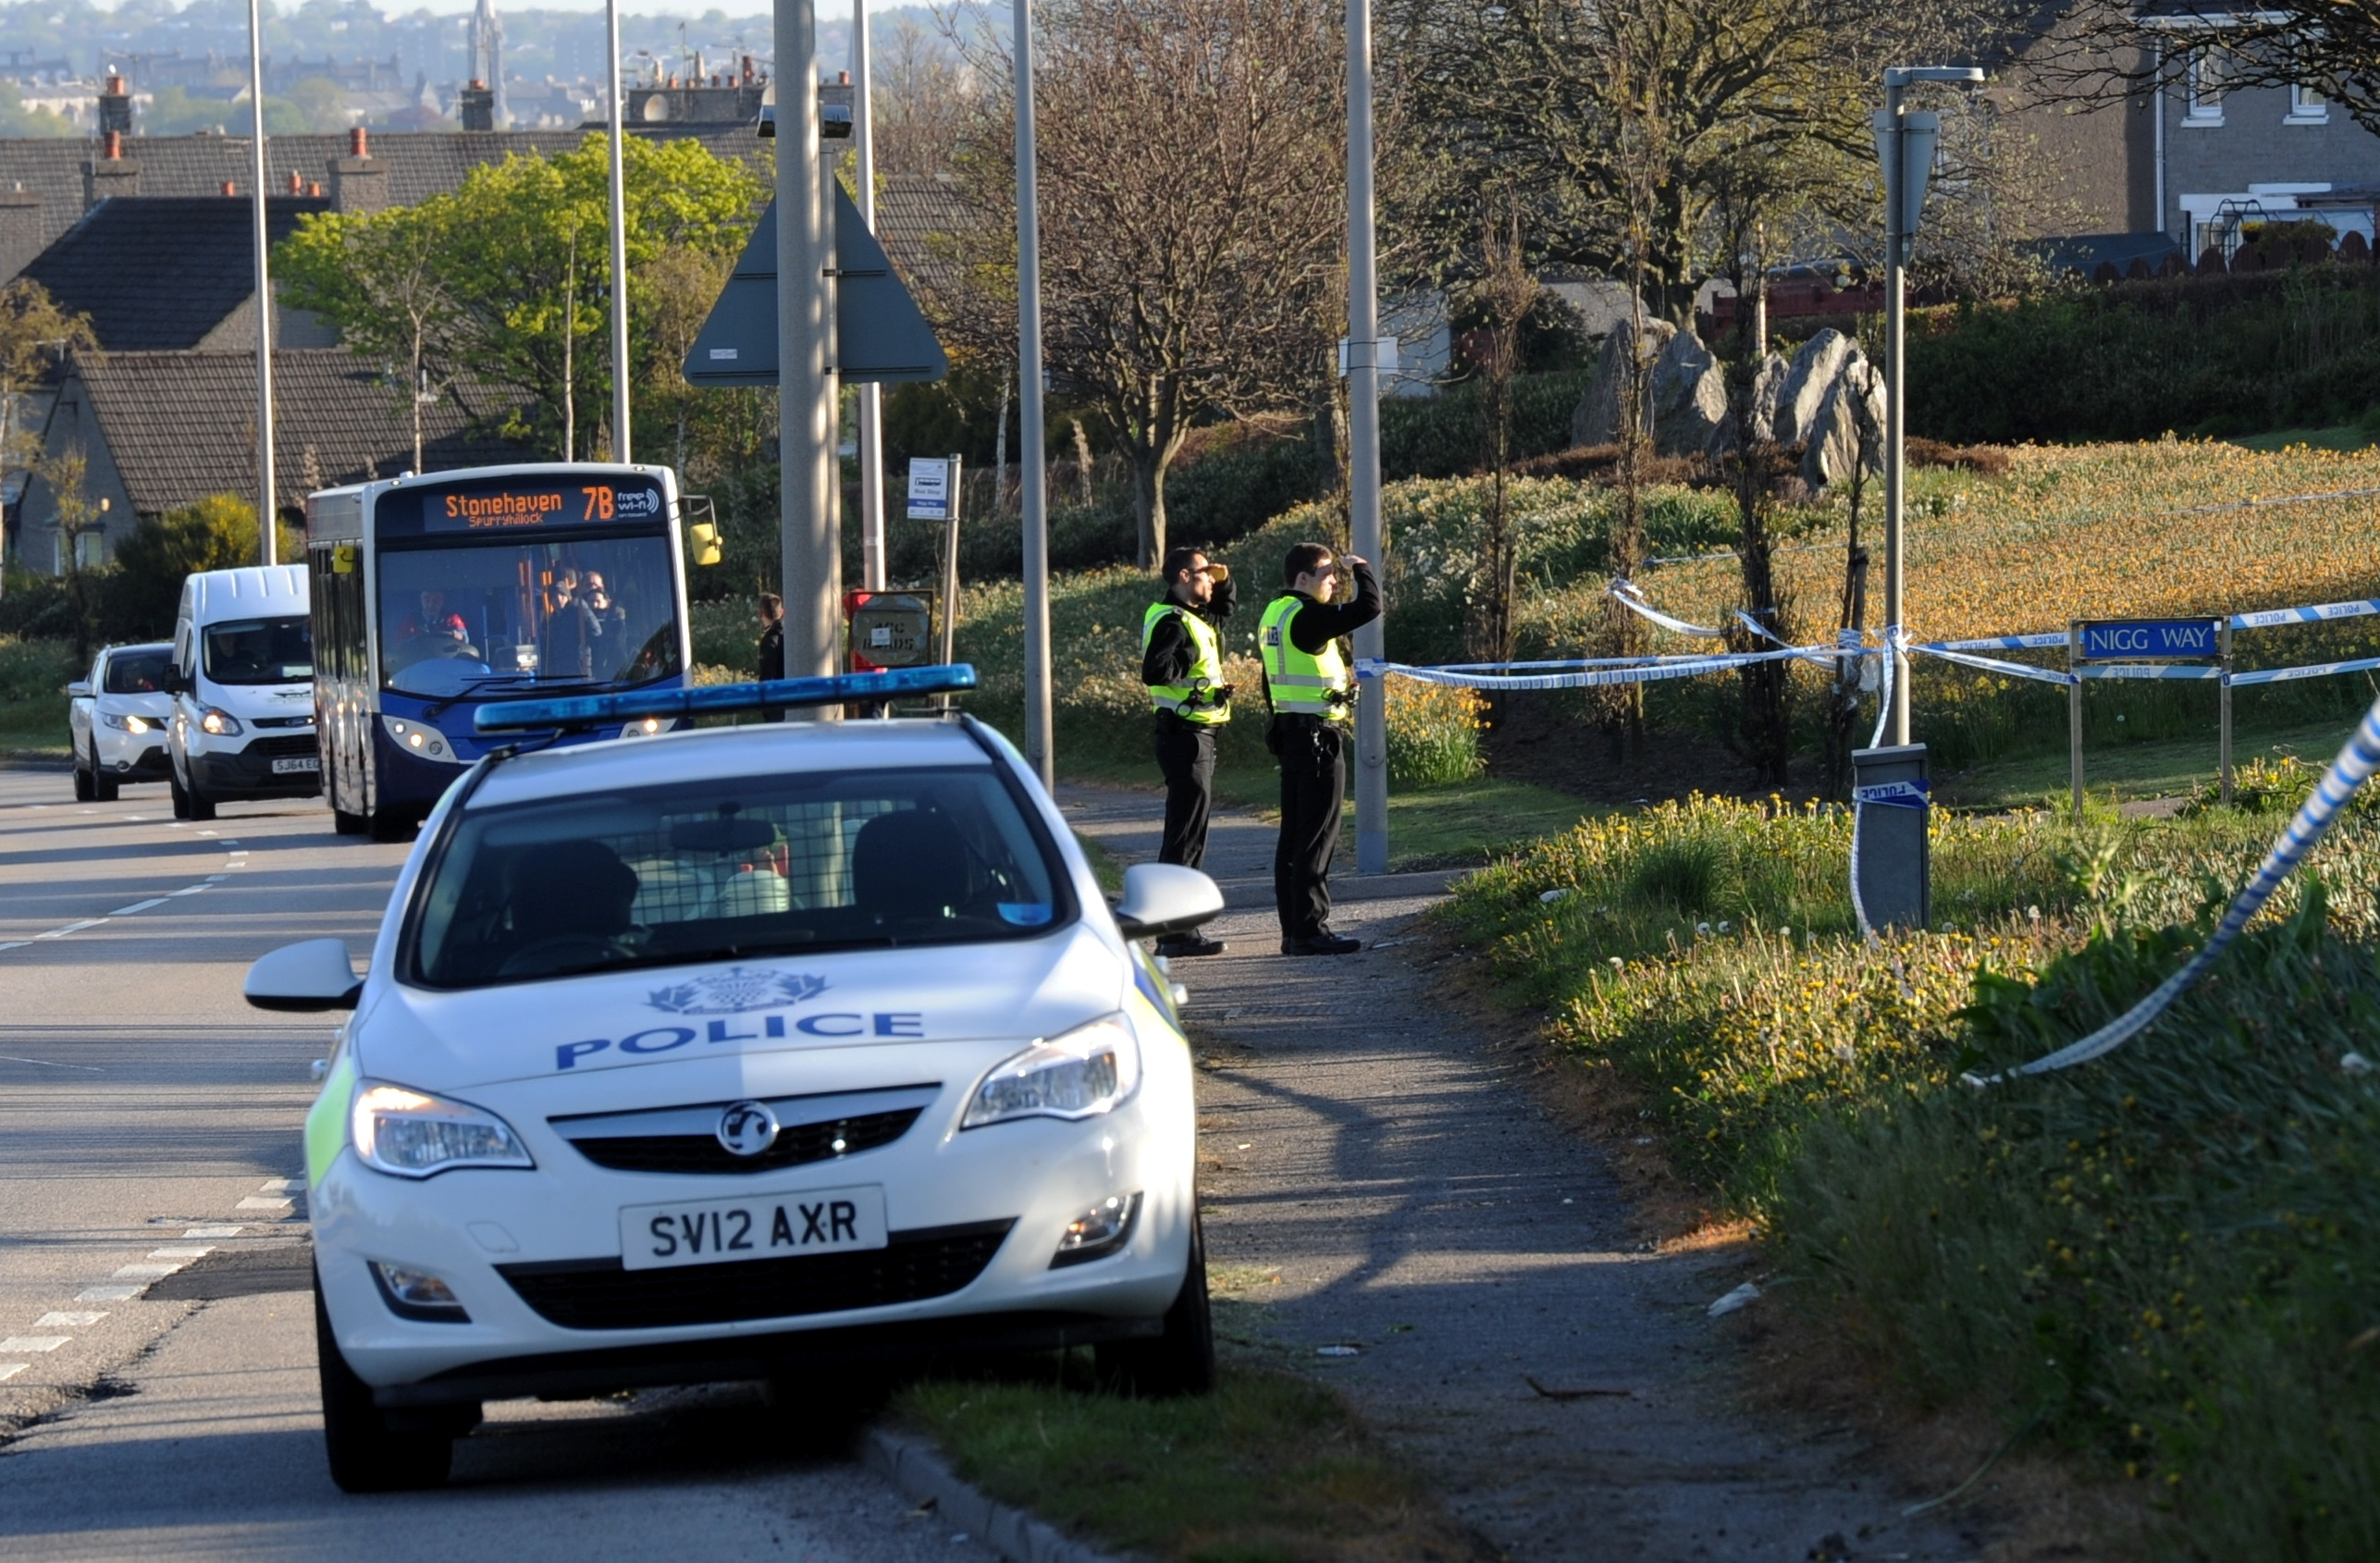 Four men have been released from custody following an 'altercation' in Aberdeen